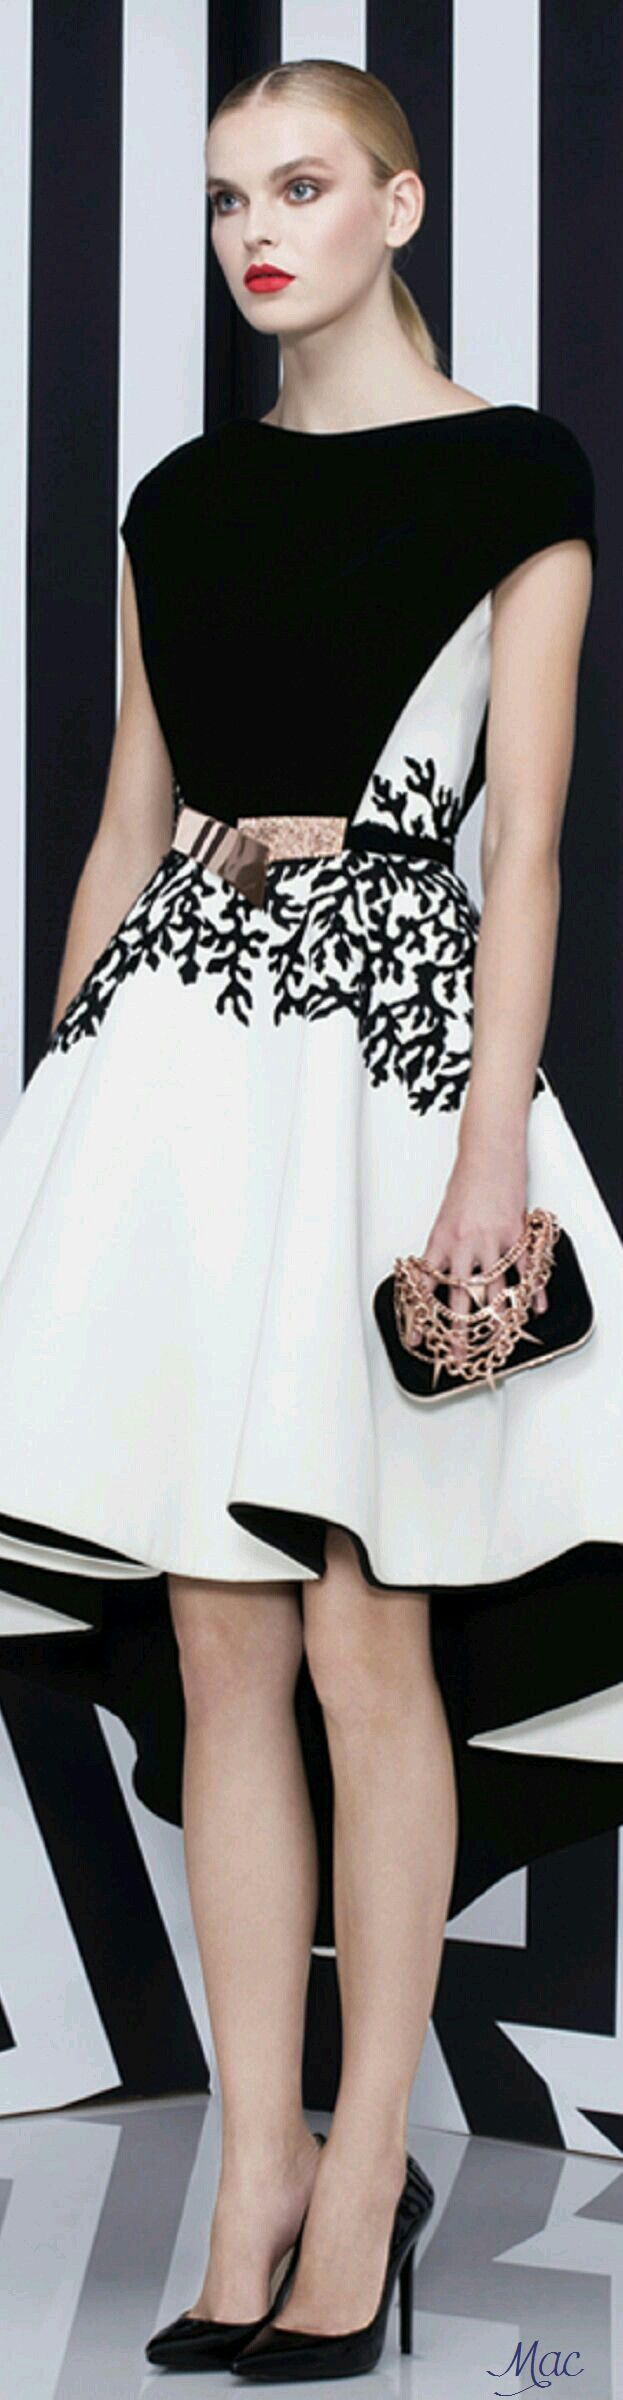 Black And White Fashion Plate Pinterest Black Gowns And Fashion